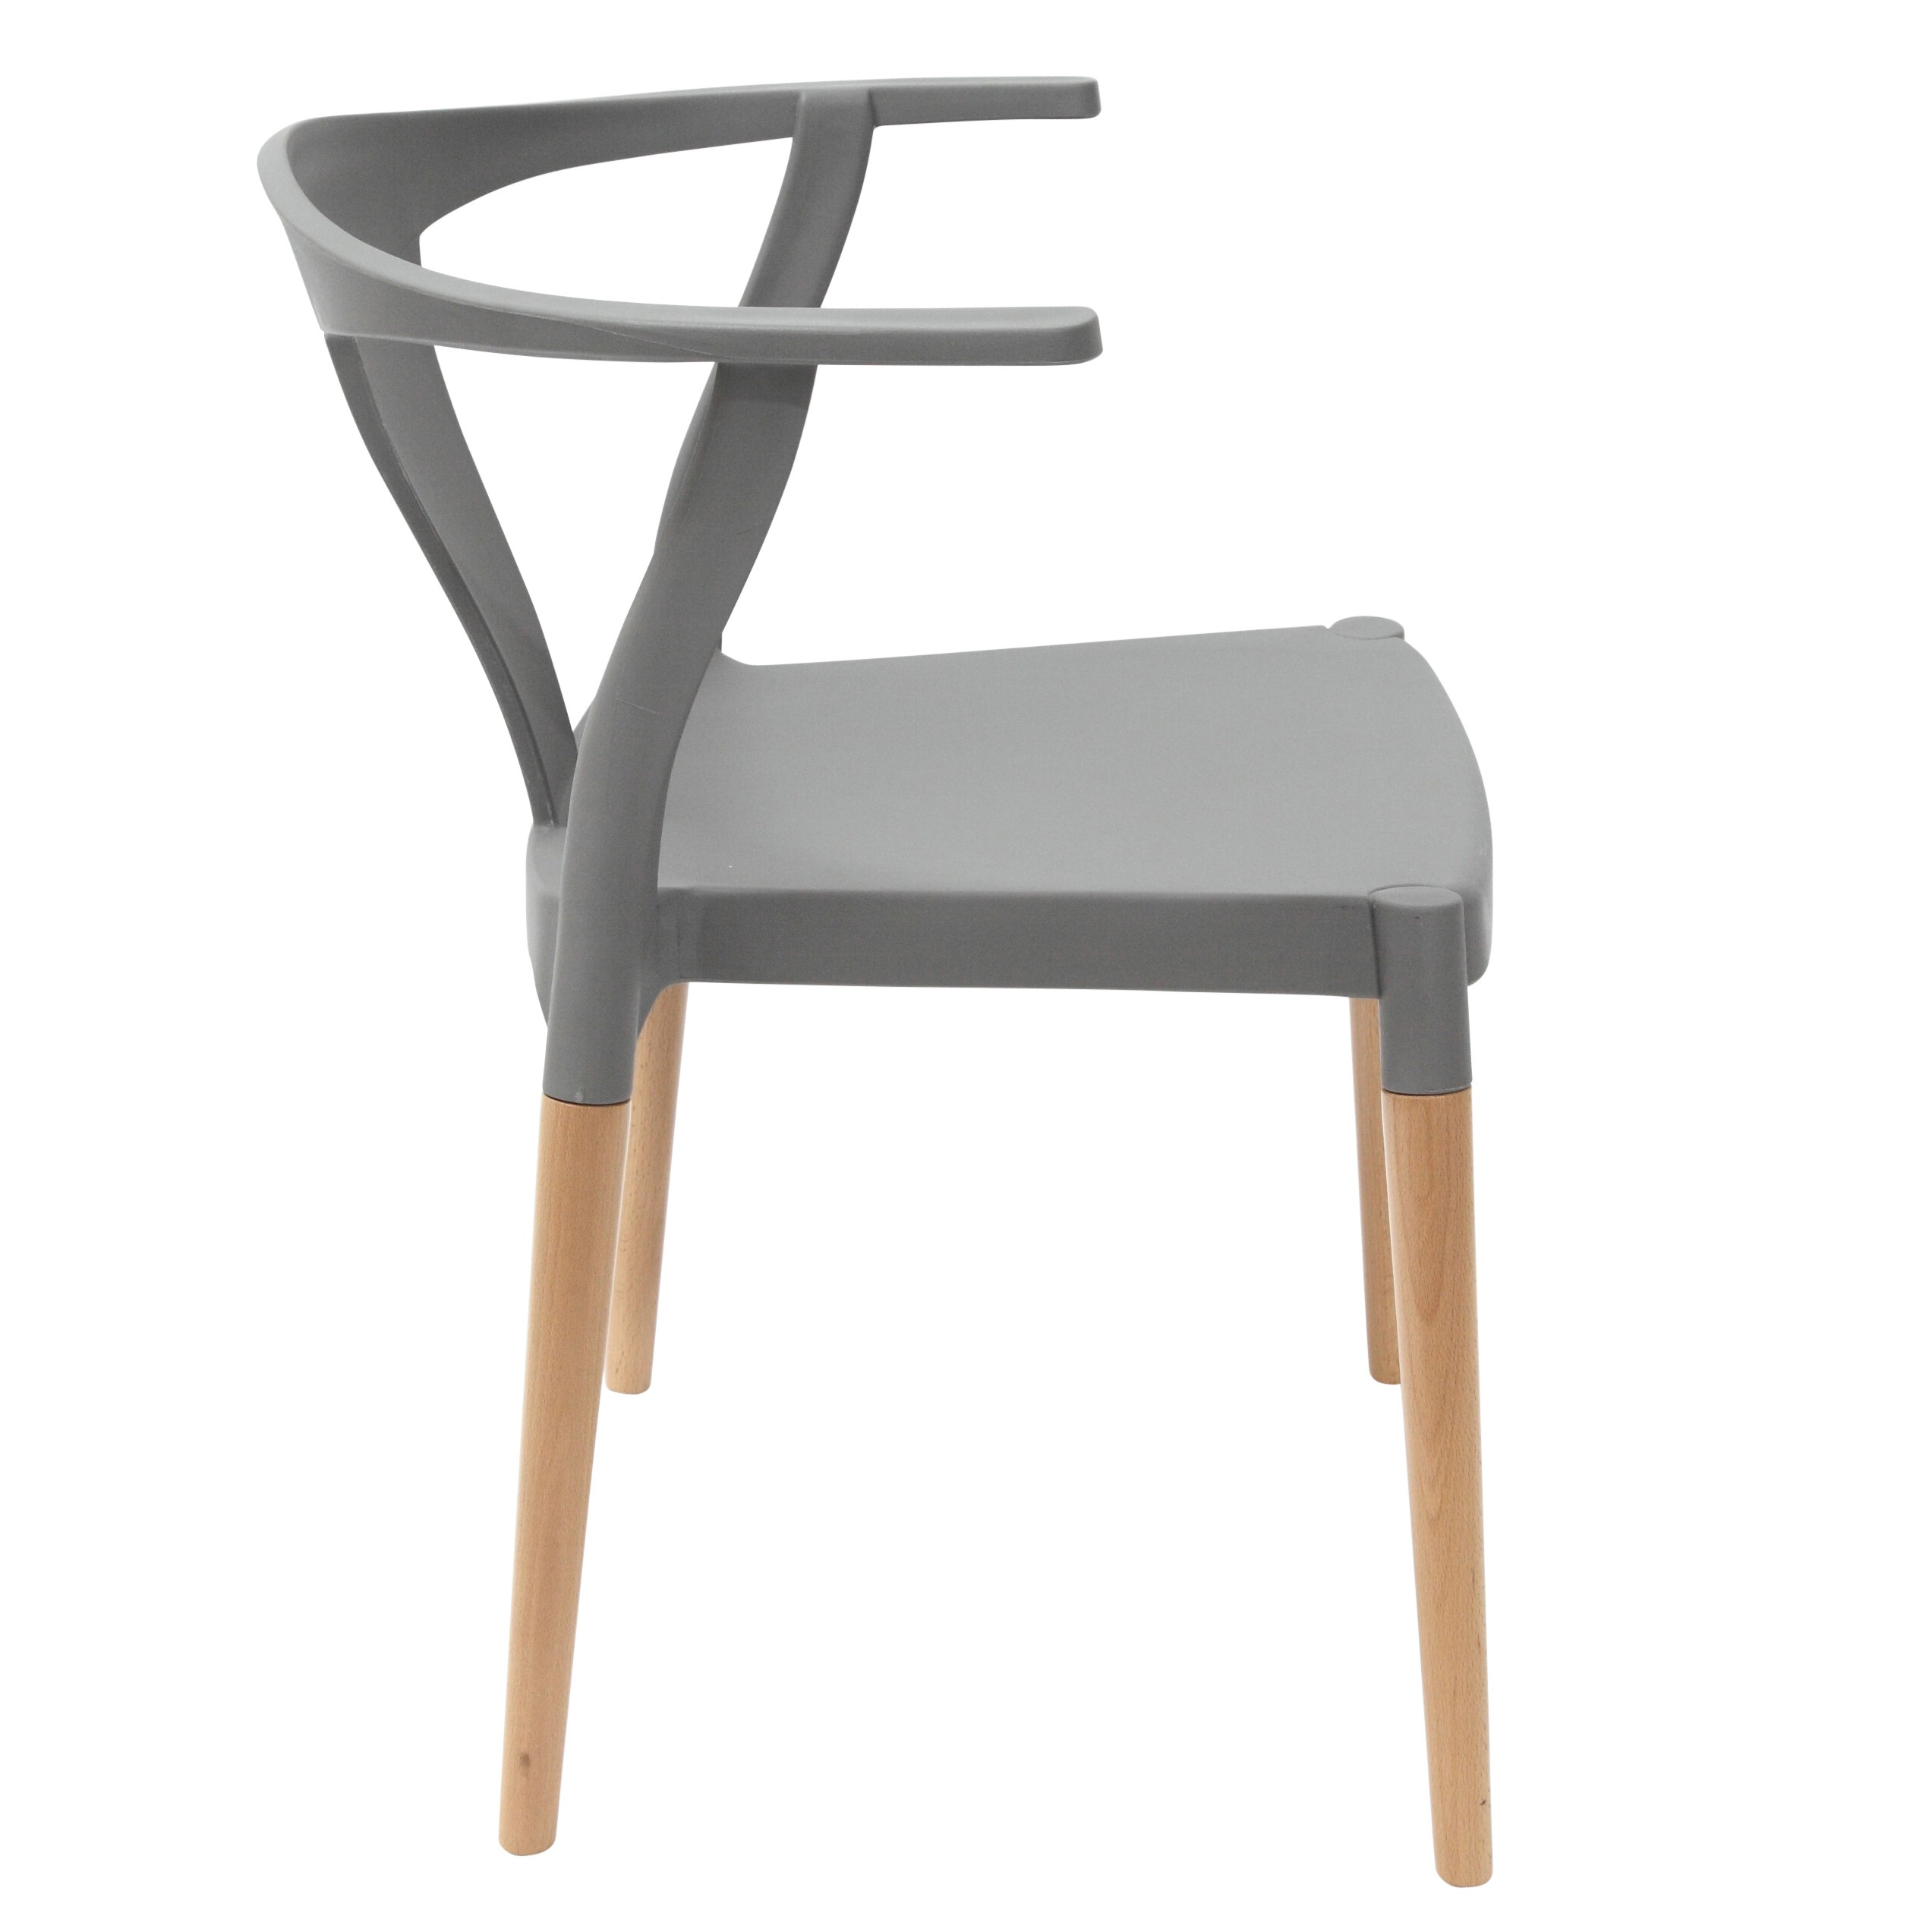 Icon Series Gray Modern Accent Dining Arm Chair Beech Wood  : icon gray dining chairp3 from www.emoderndecor.com size 2545 x 2545 jpeg 290kB